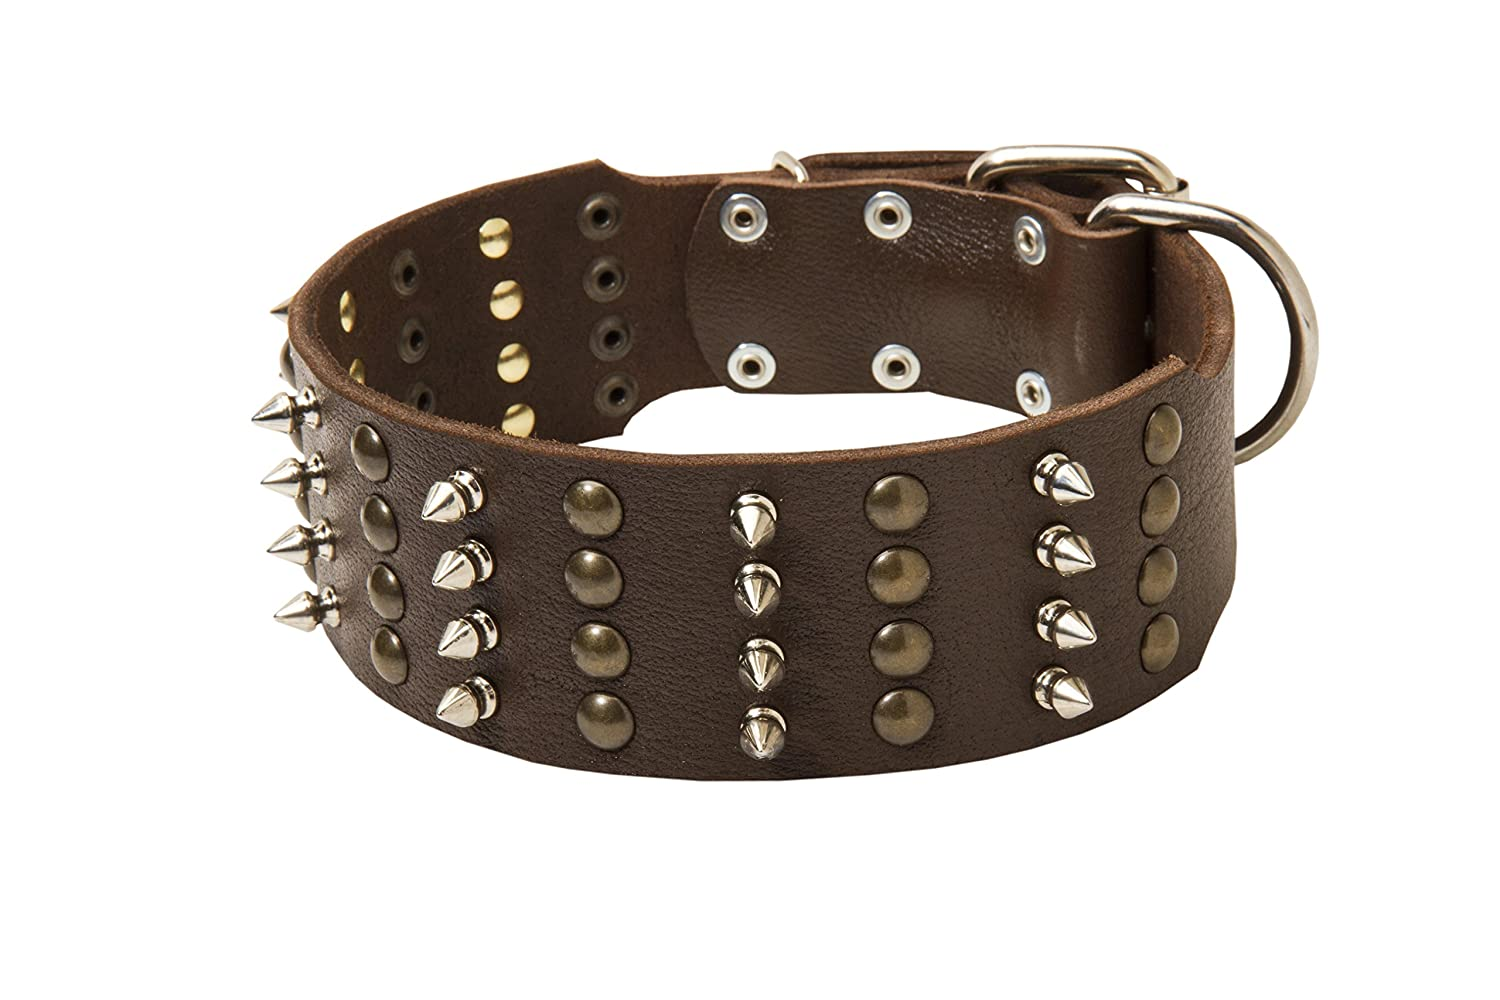 Black fits for 19 inch dog's neck size Black fits for 19 inch dog's neck size 19 inch Extra Wide Black Leather Studded Dog Collar with 4 Rows of Spikes and Studs  Crazy Combo  2 2 5 inch (60 mm) wide